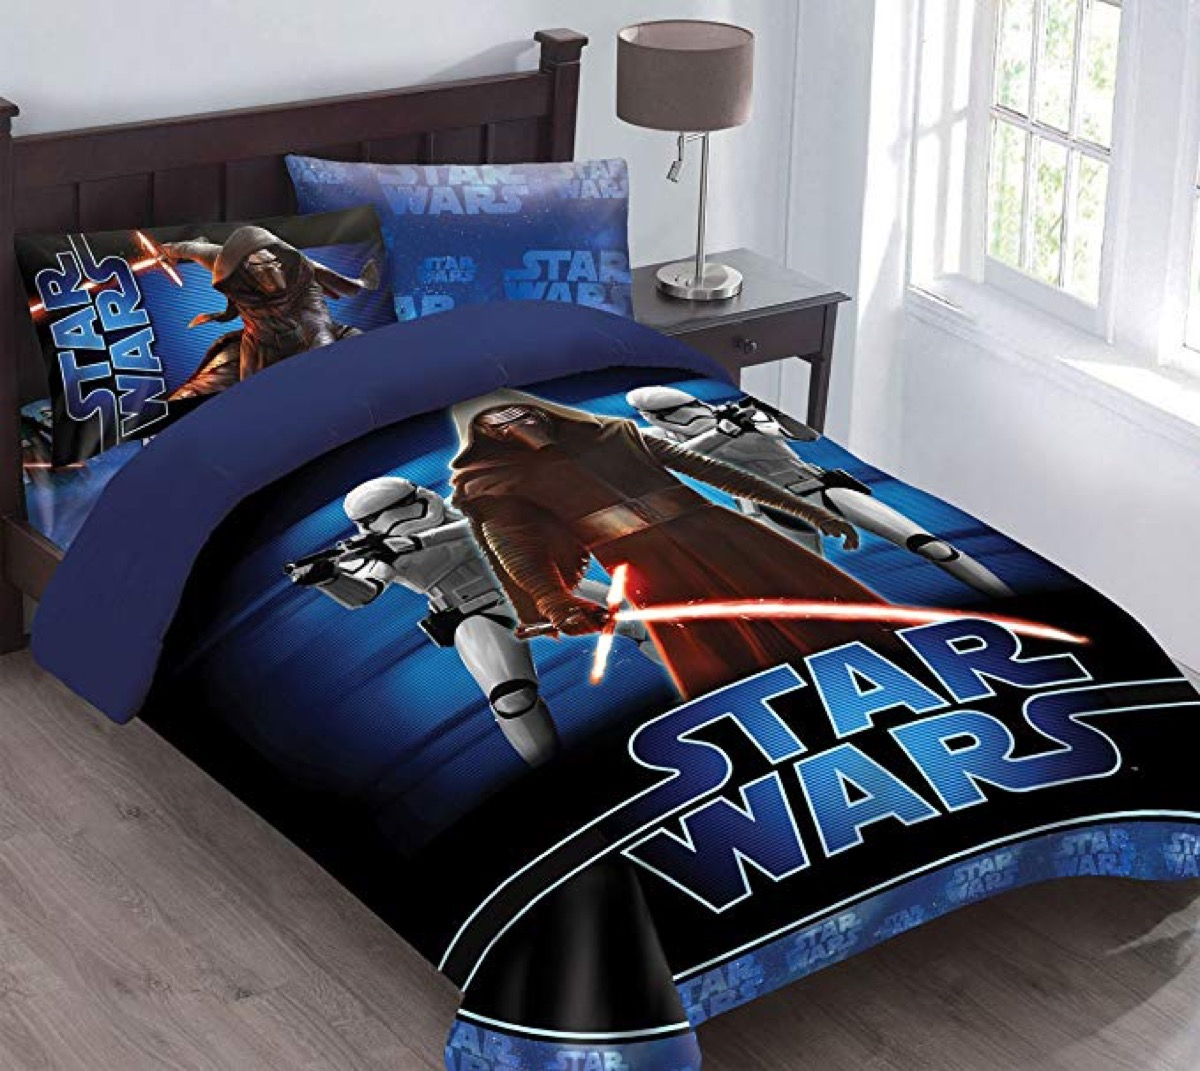 stars wars bed cover, no man over 40